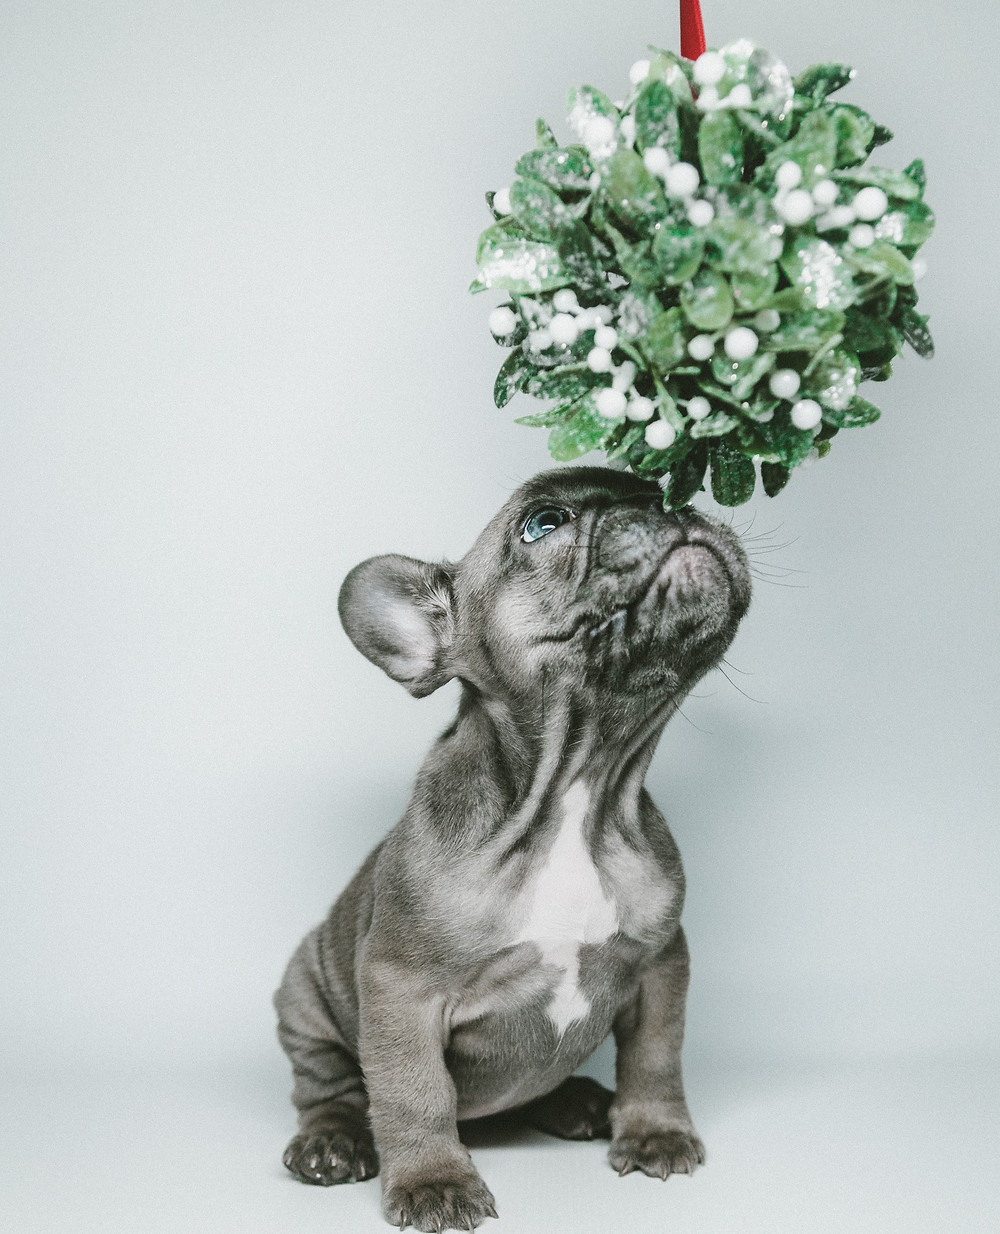 French bulldog puppy and mistletoe on Christmas